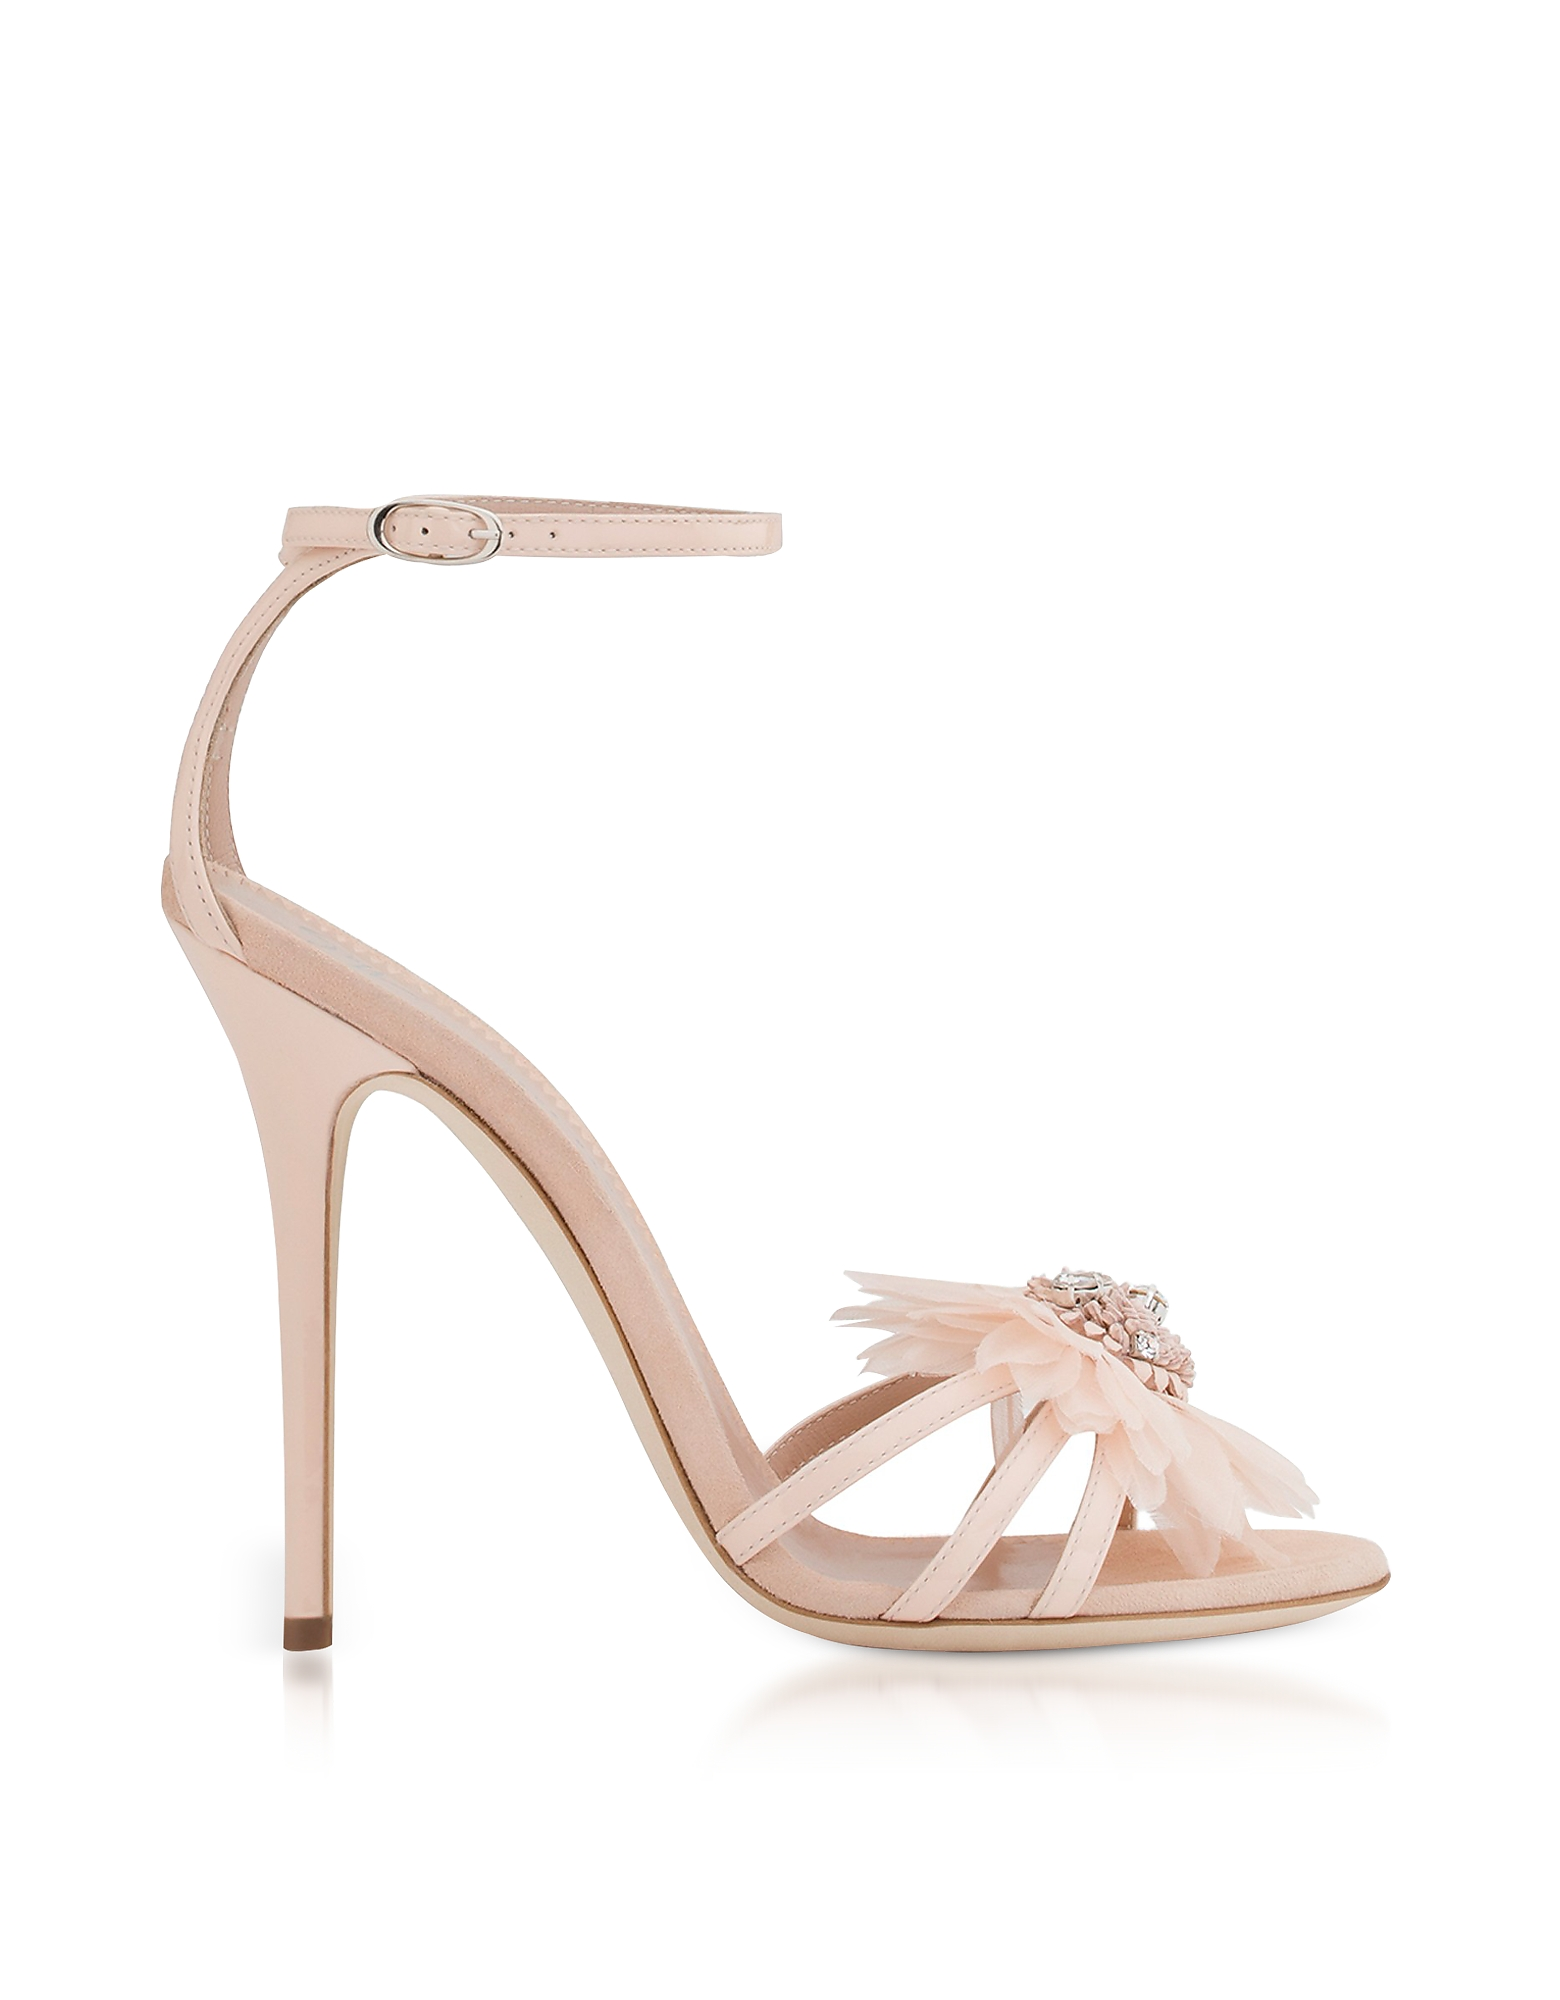 Giuseppe Zanotti Shoes, Annemarie Pink Patent Leather High Heel Sandals w/Flower